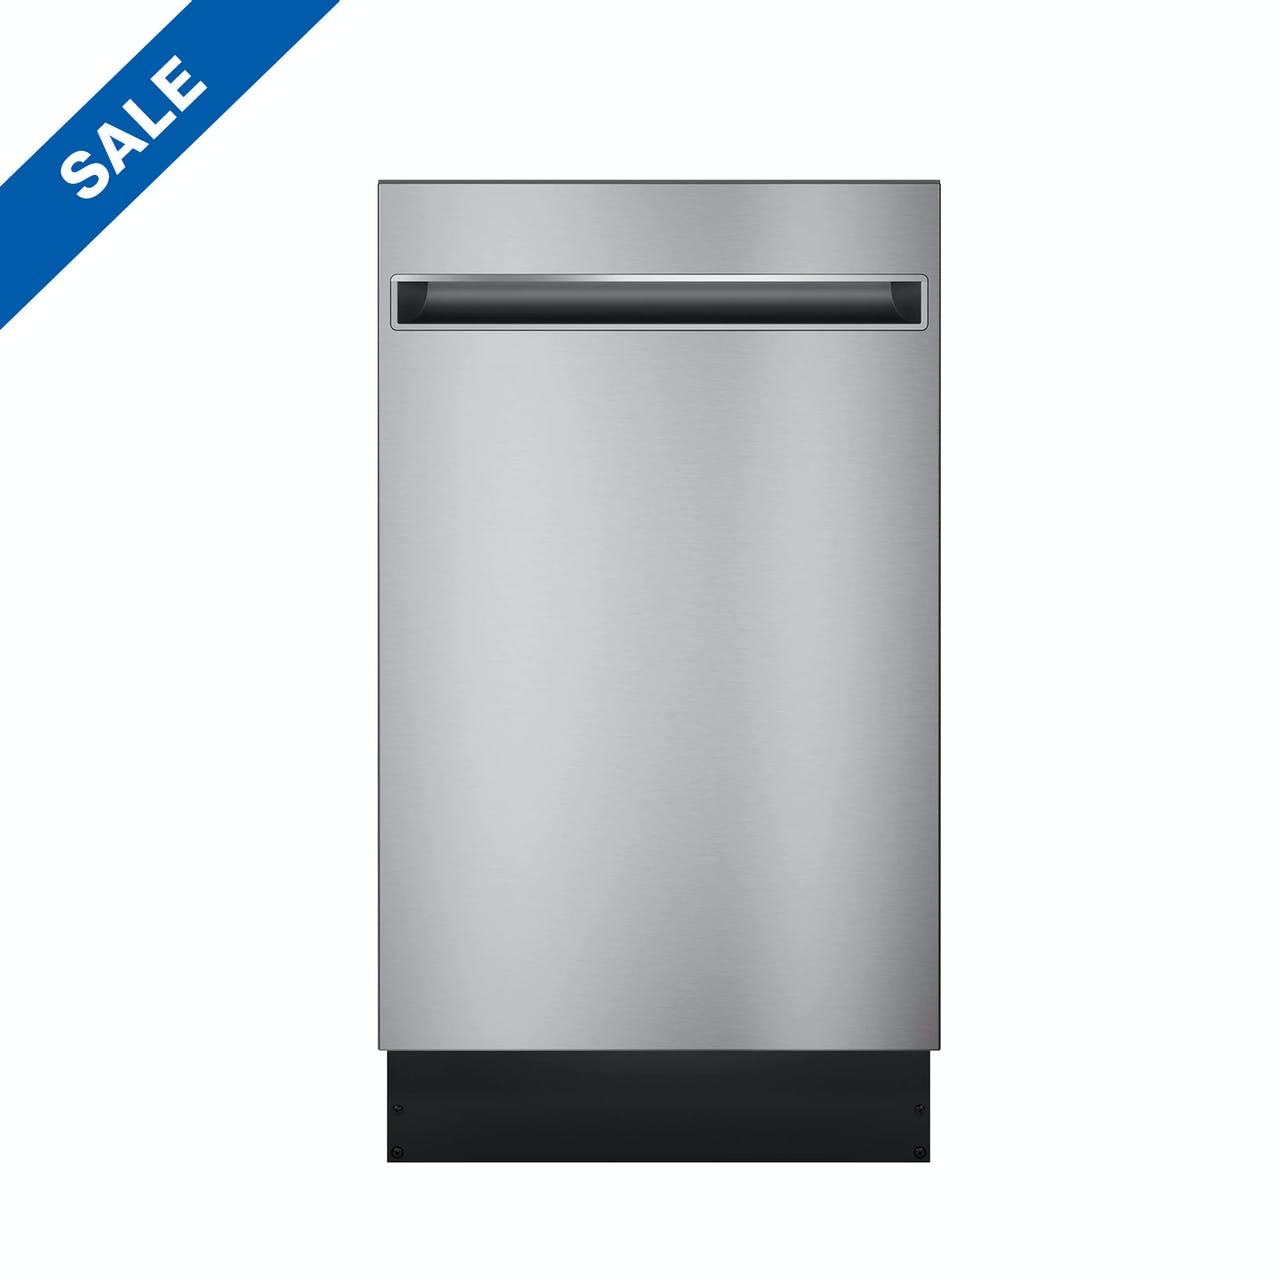 """Haier 18"""" Stainless Steel Interior Dishwasher with Sanitize Cycle Model QDT125SSLSS"""